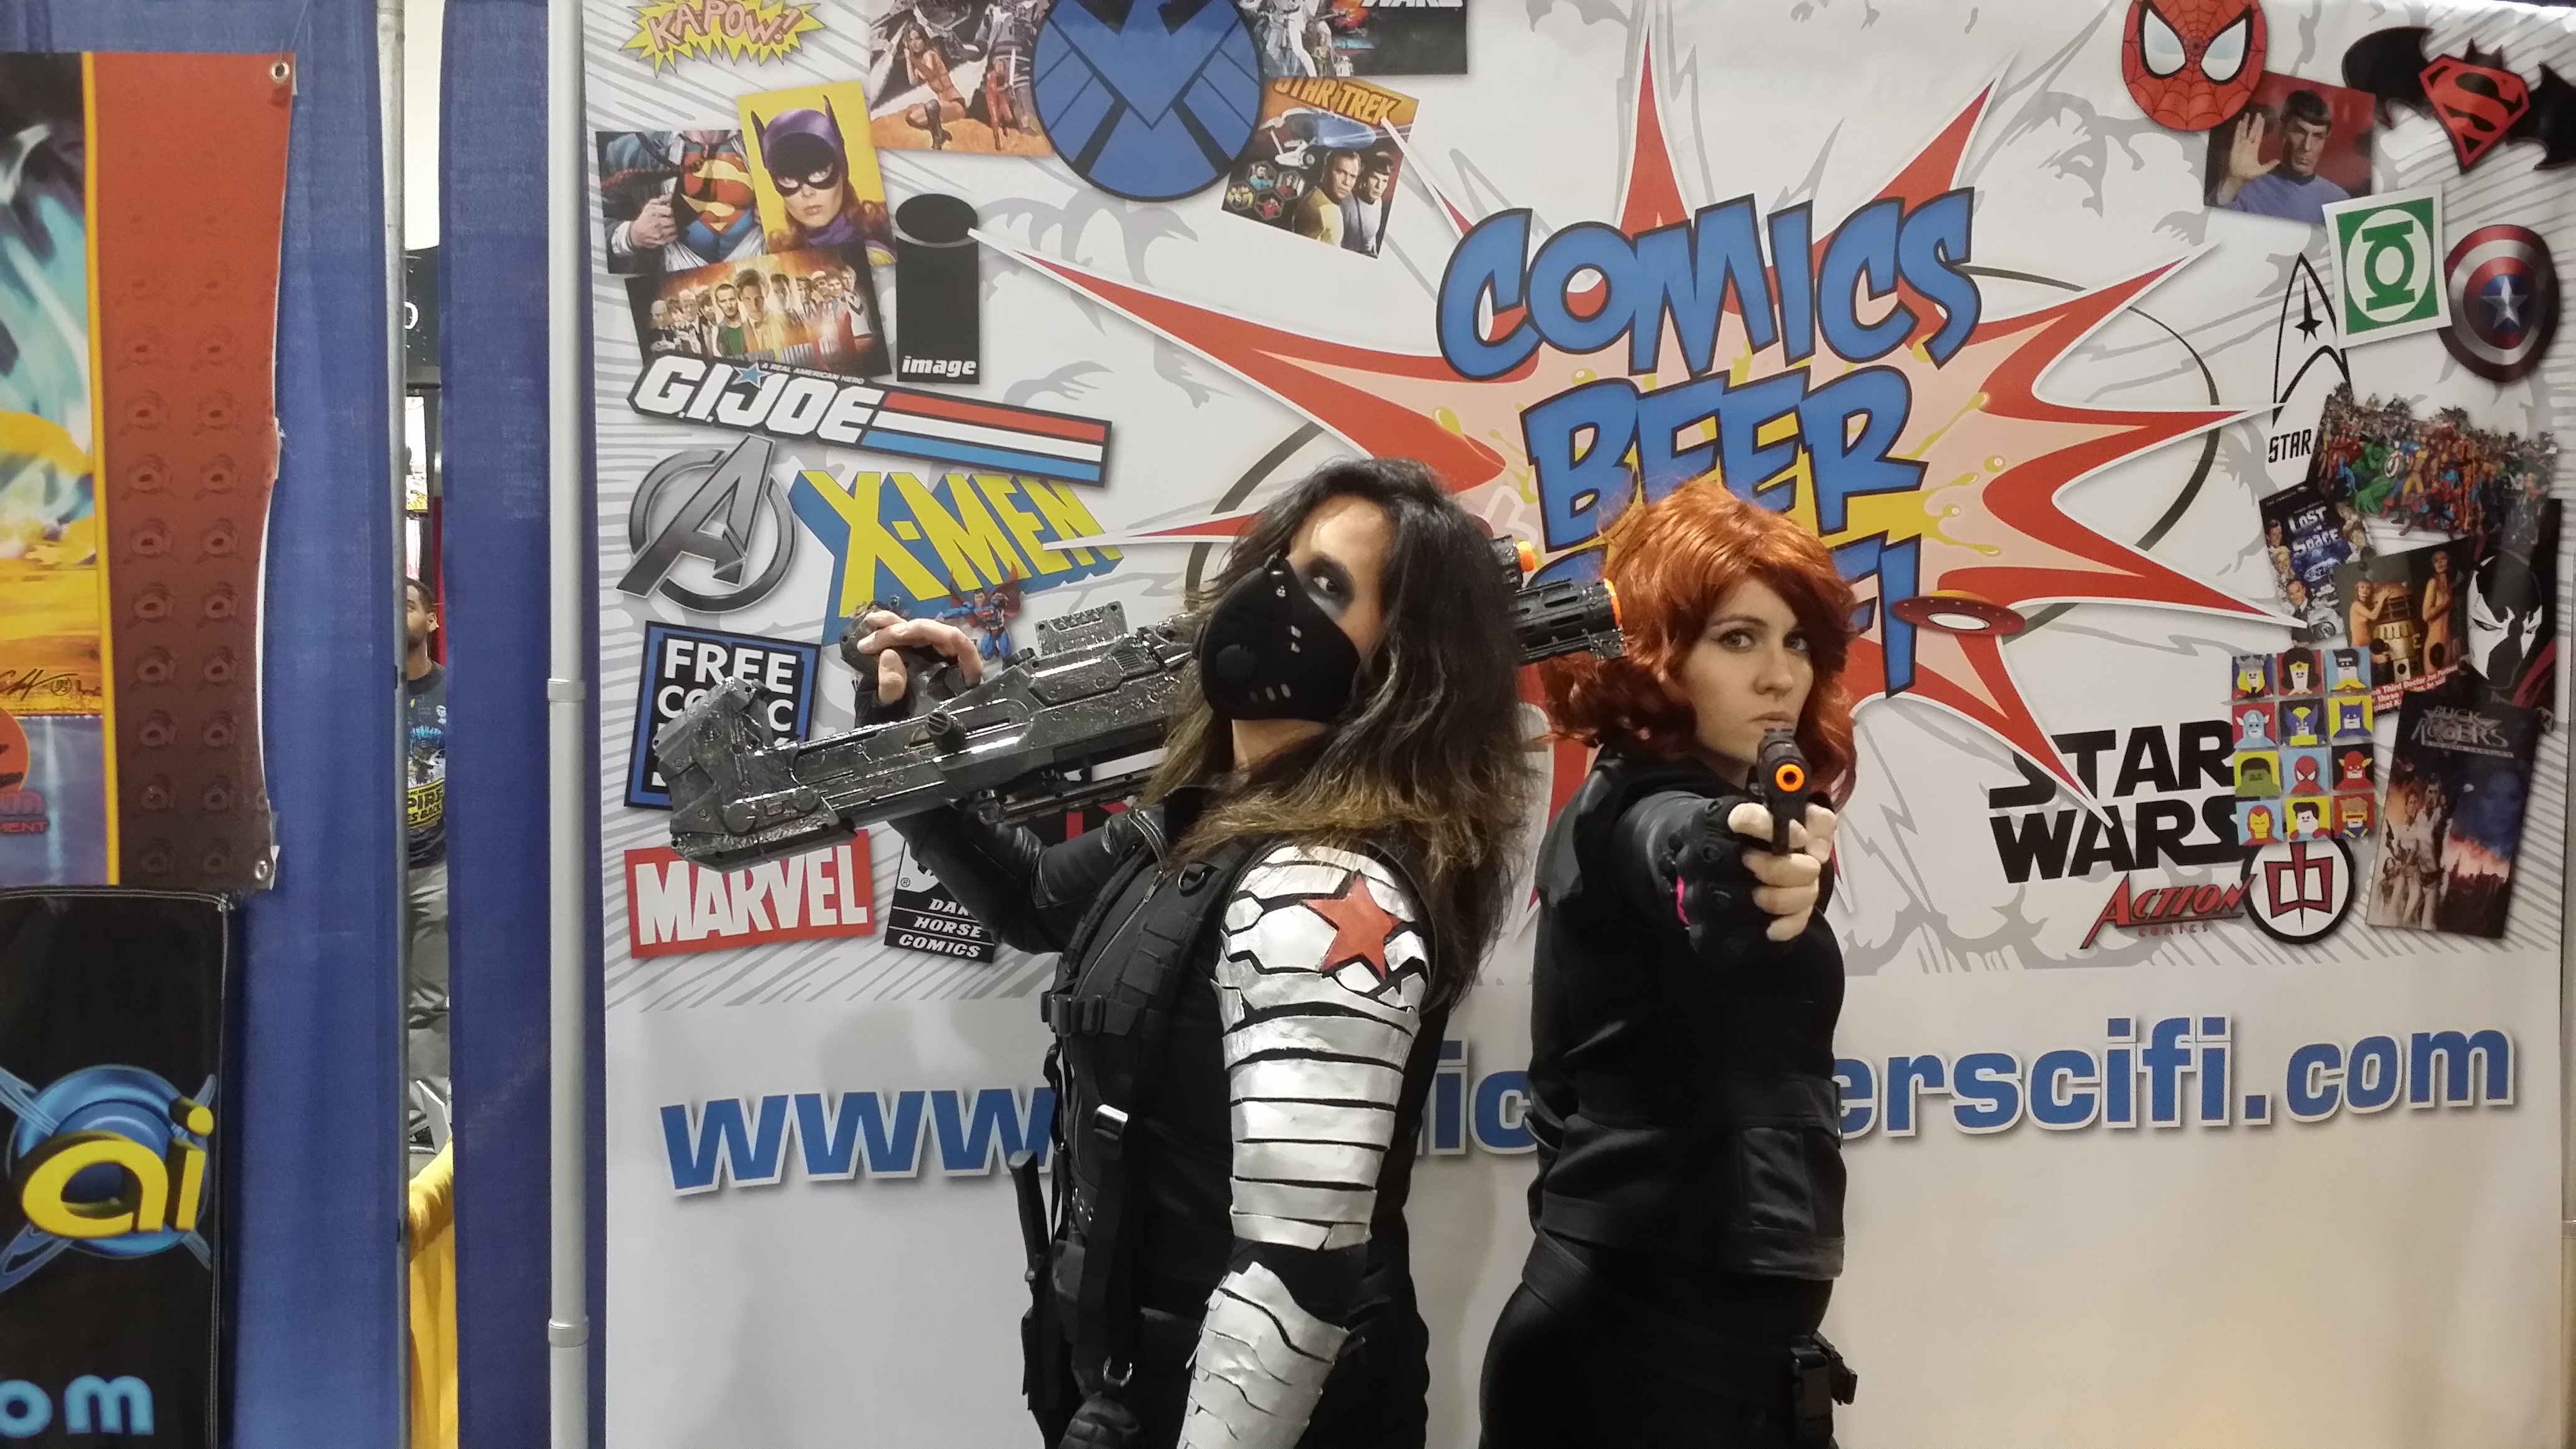 Winter Soldier And Black Widow At The Cbsf Cosplay Contest At Motor City Comic Con Comics Beer Sci Fi